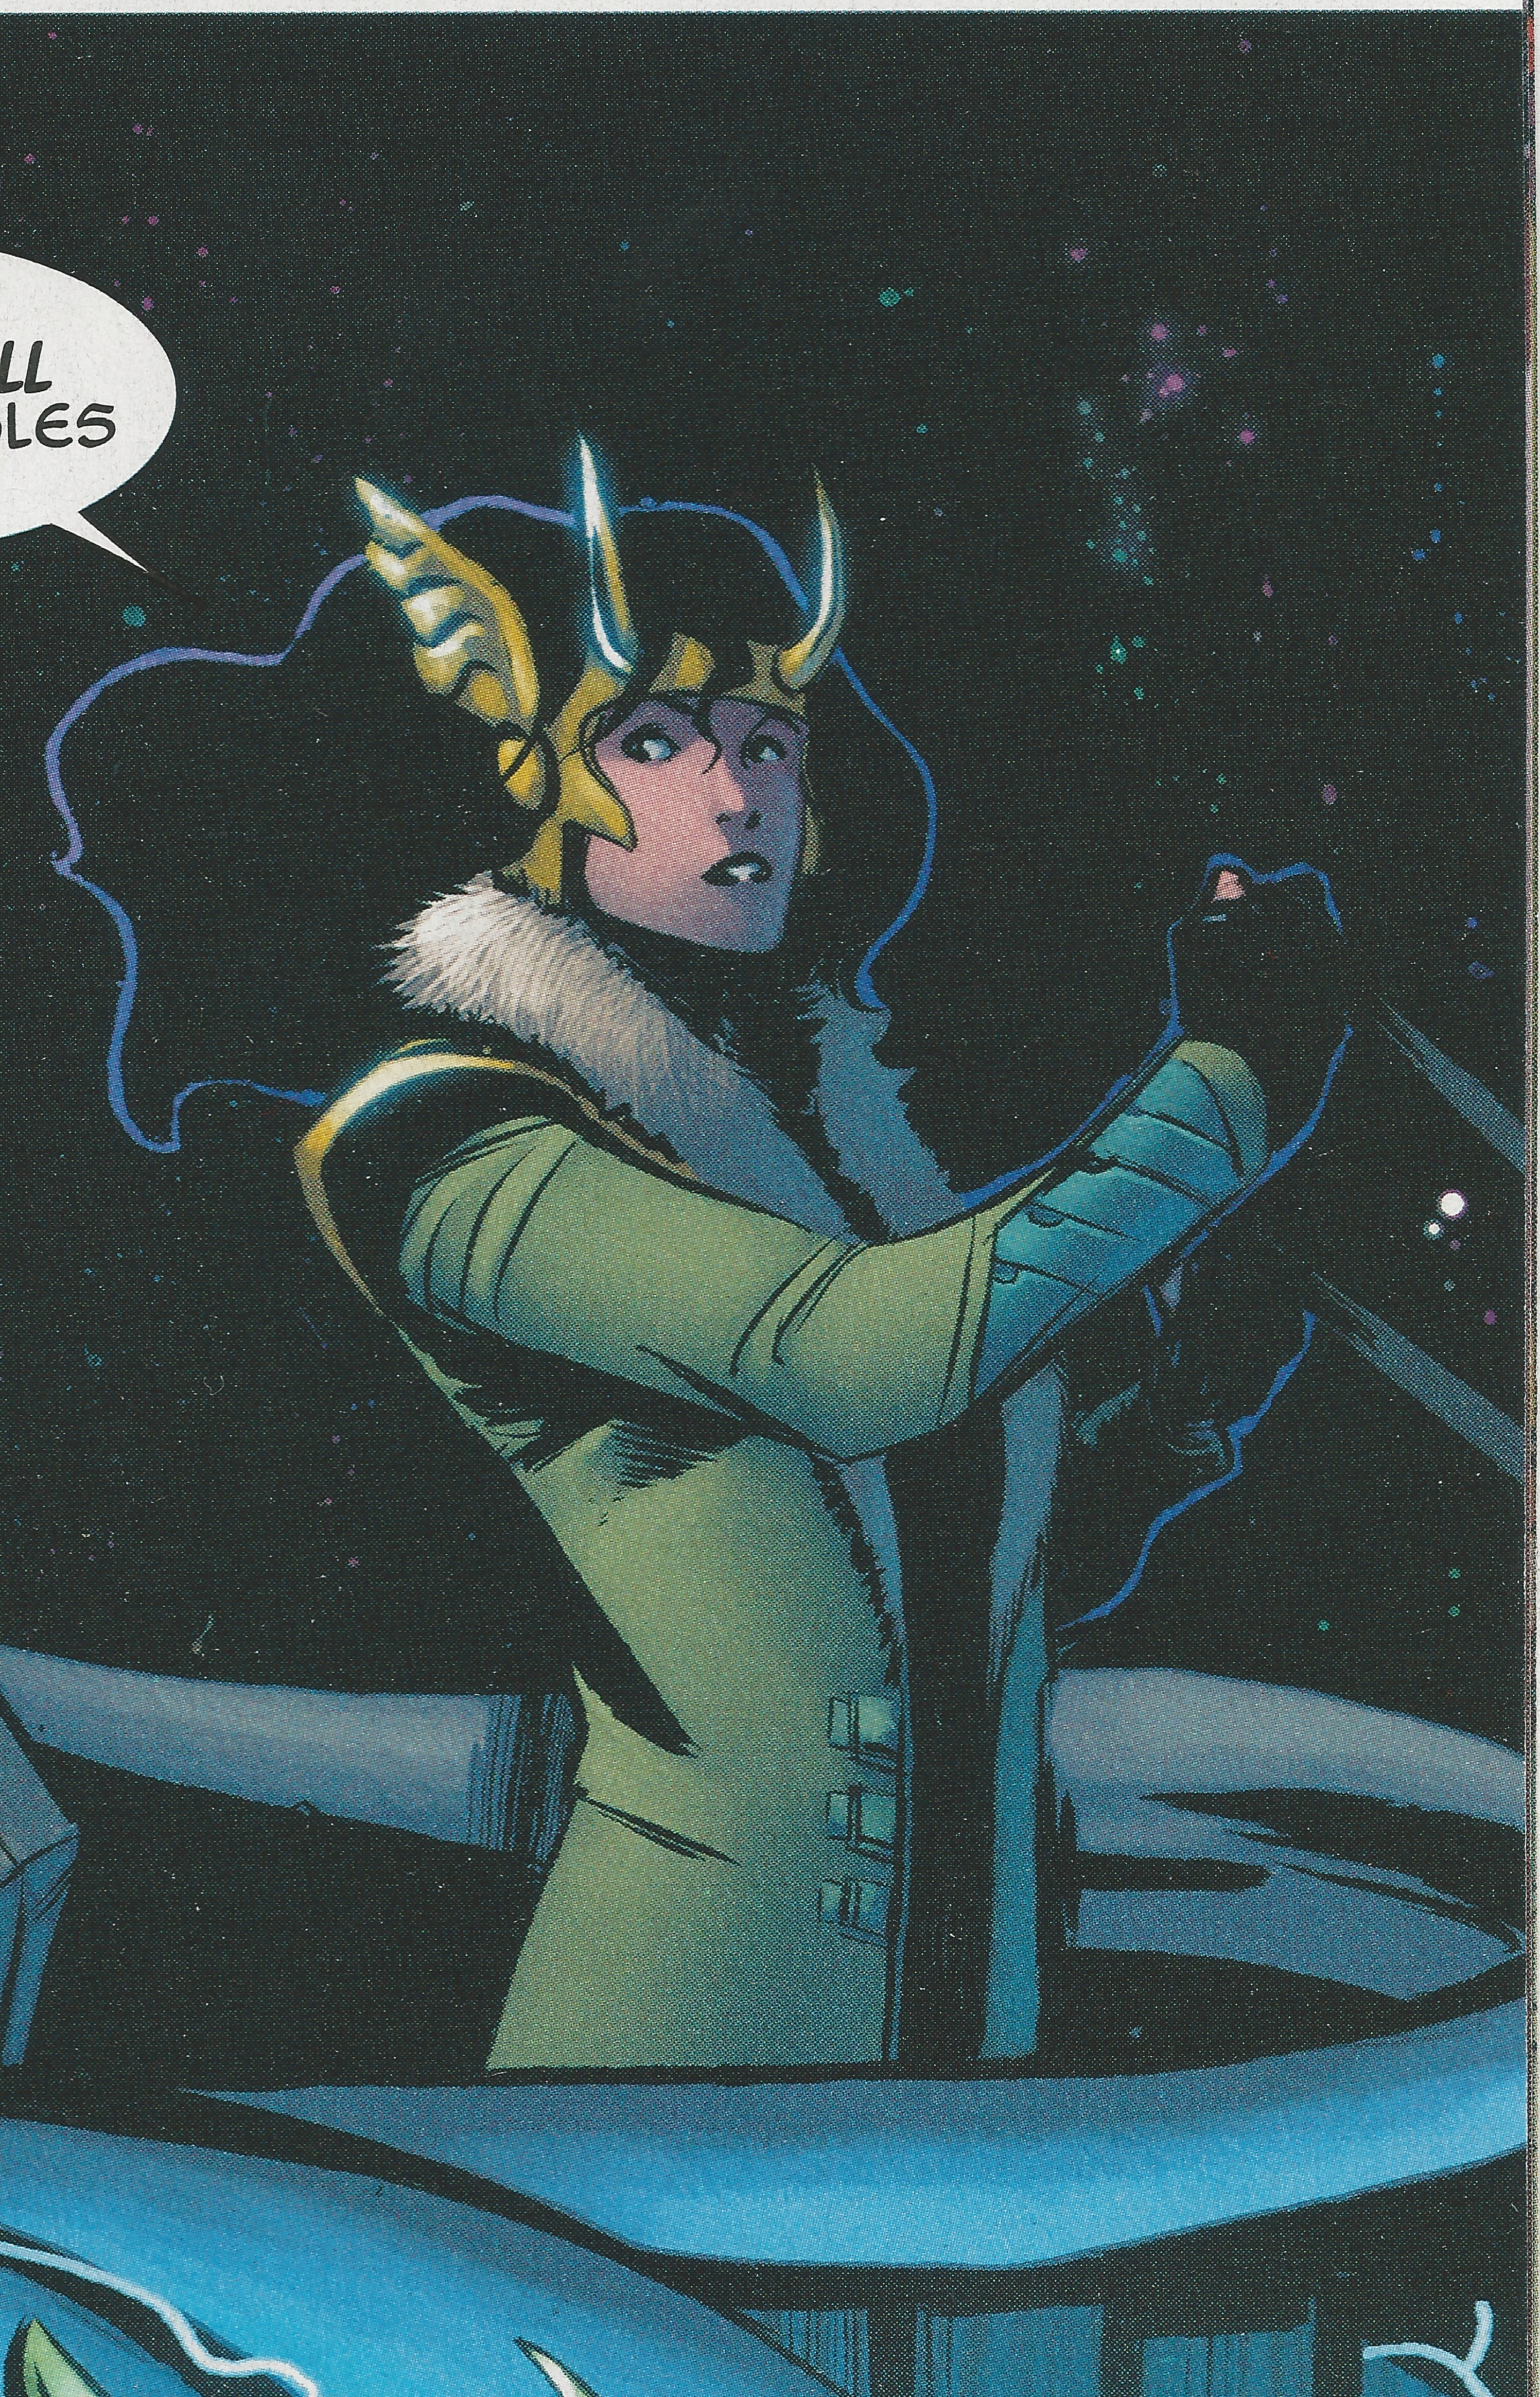 Loki | Lady Geek Girl and Friends | Page 3